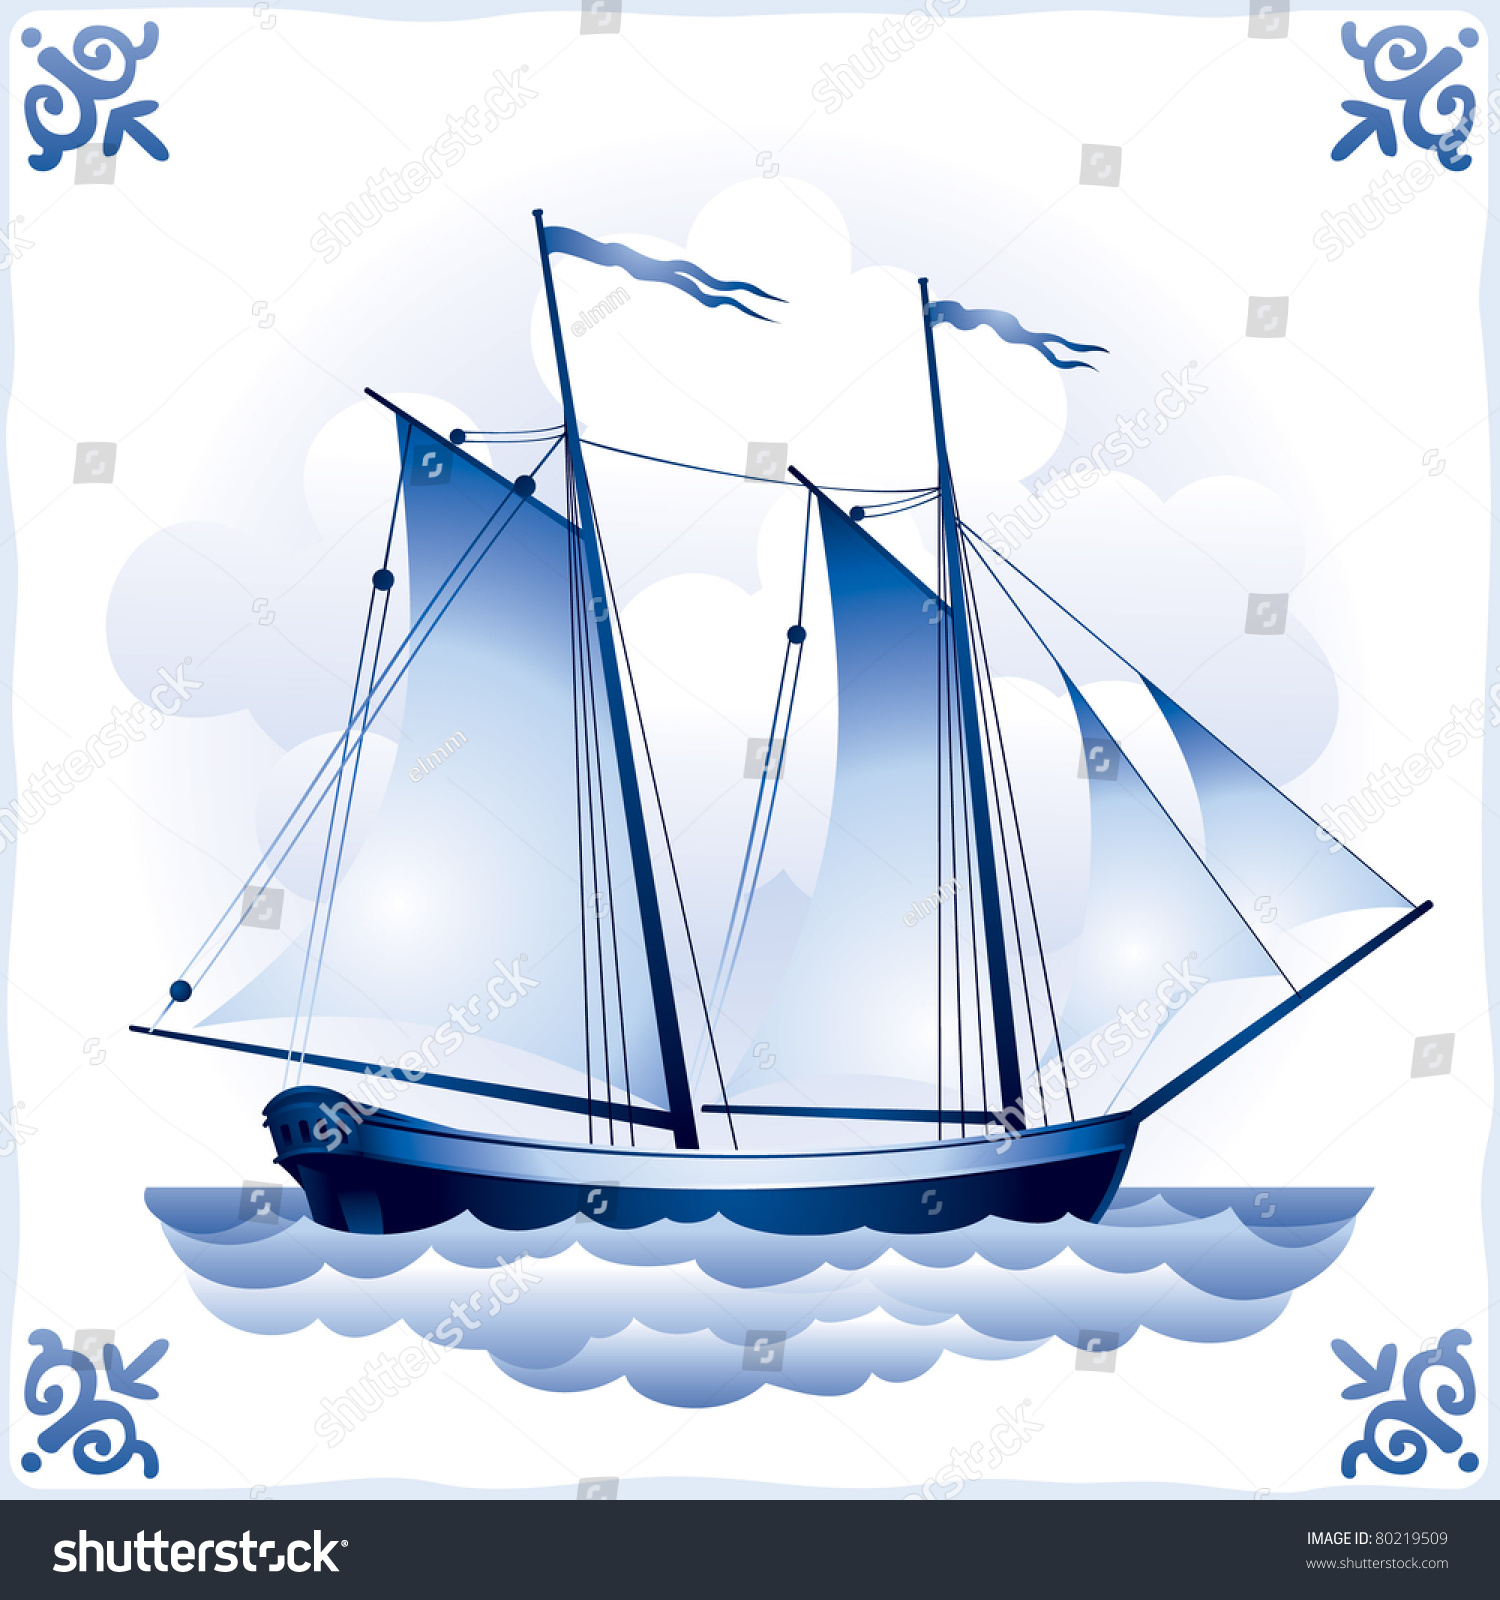 Ship on blue dutch tile 7 stock vector 80219509 shutterstock ship on the blue dutch tile 7 schooner glazed porcelain ceramic pattern dailygadgetfo Image collections